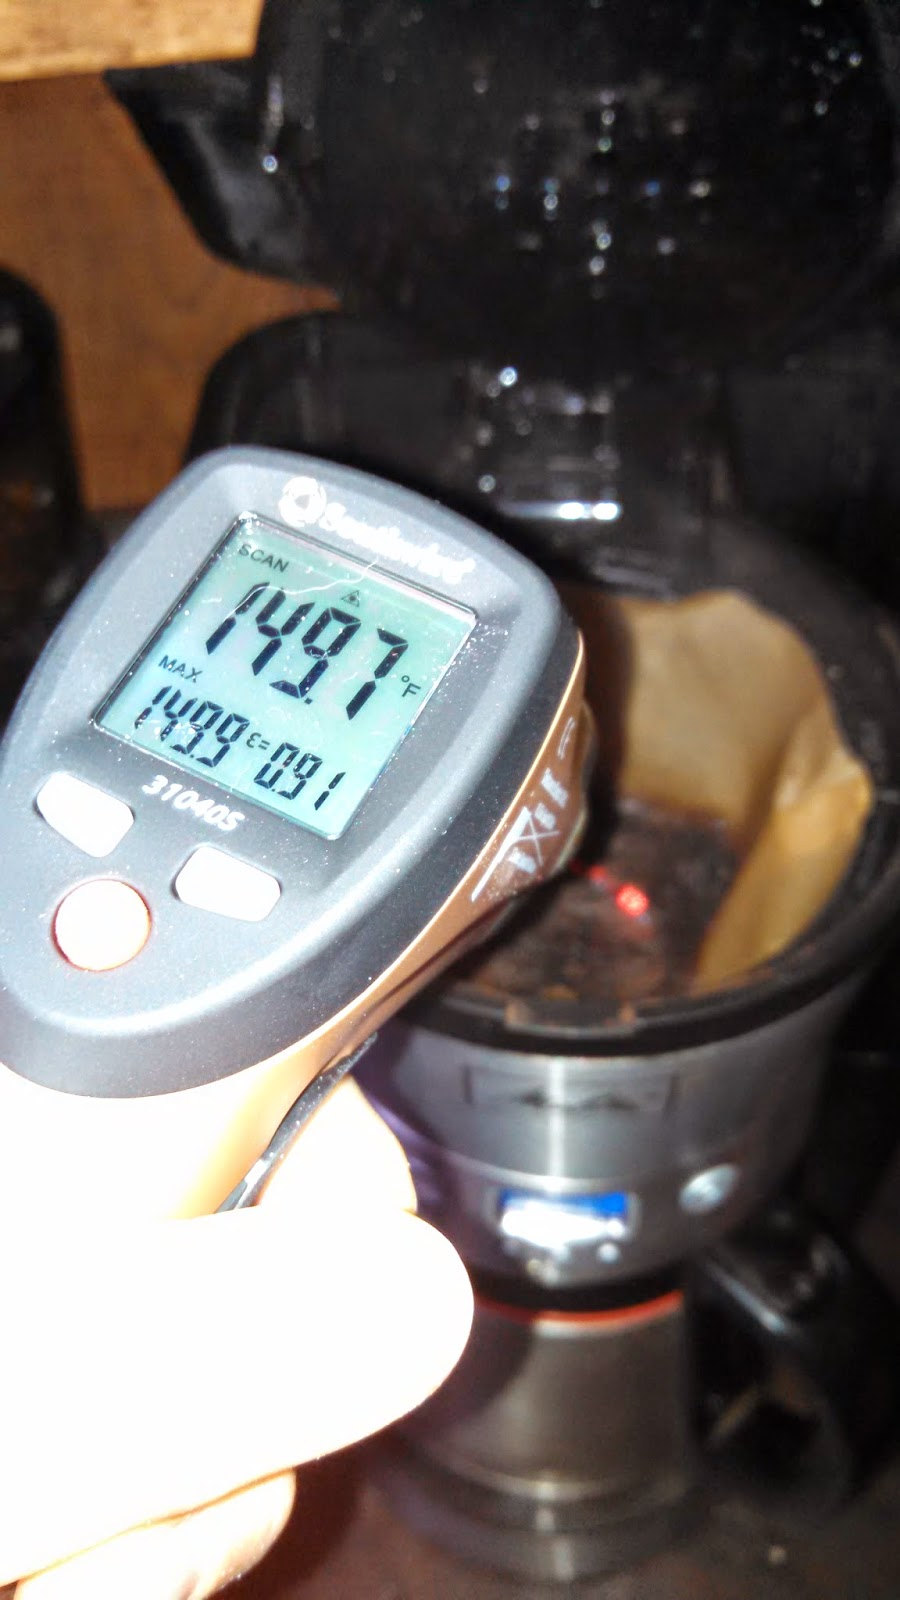 Measuring Brewing Temperature of Coffee- Coffee Grounds in the Filter Basket